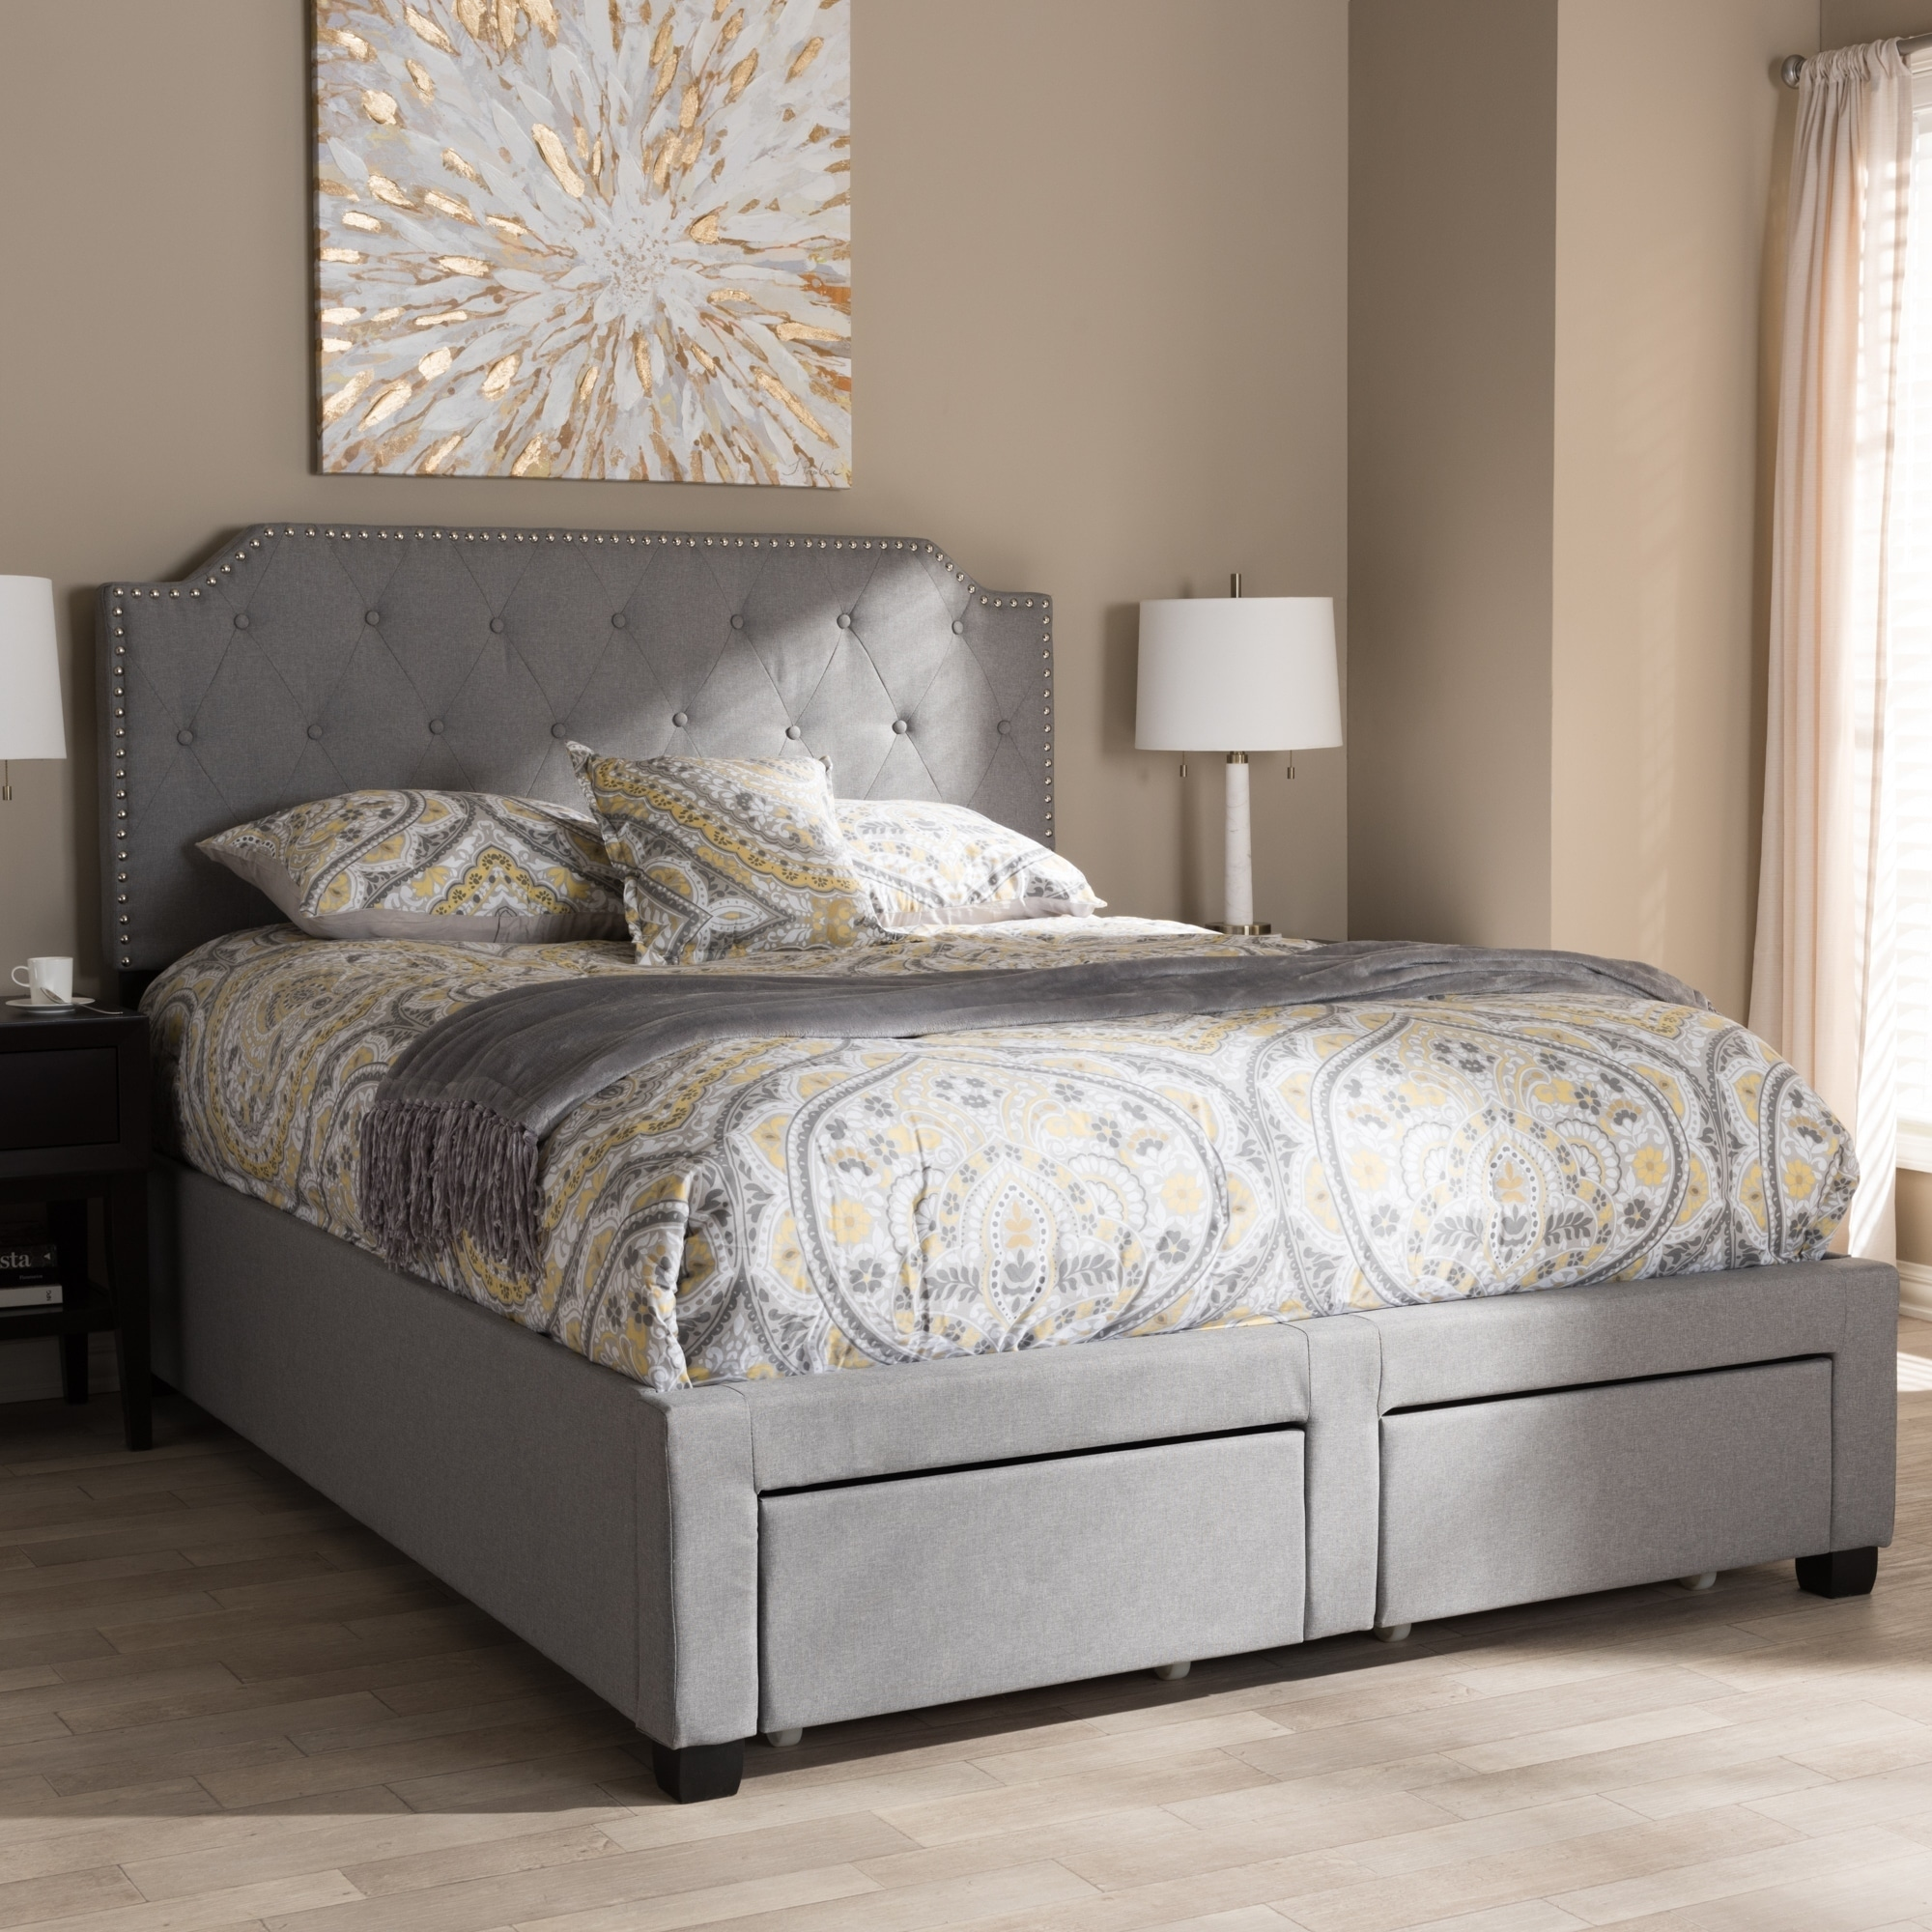 Shop Contemporary Grey Fabric Storage Bed by Baxton Studio - Free Shipping Today - Overstock.com - 20303059 & Shop Contemporary Grey Fabric Storage Bed by Baxton Studio - Free ...